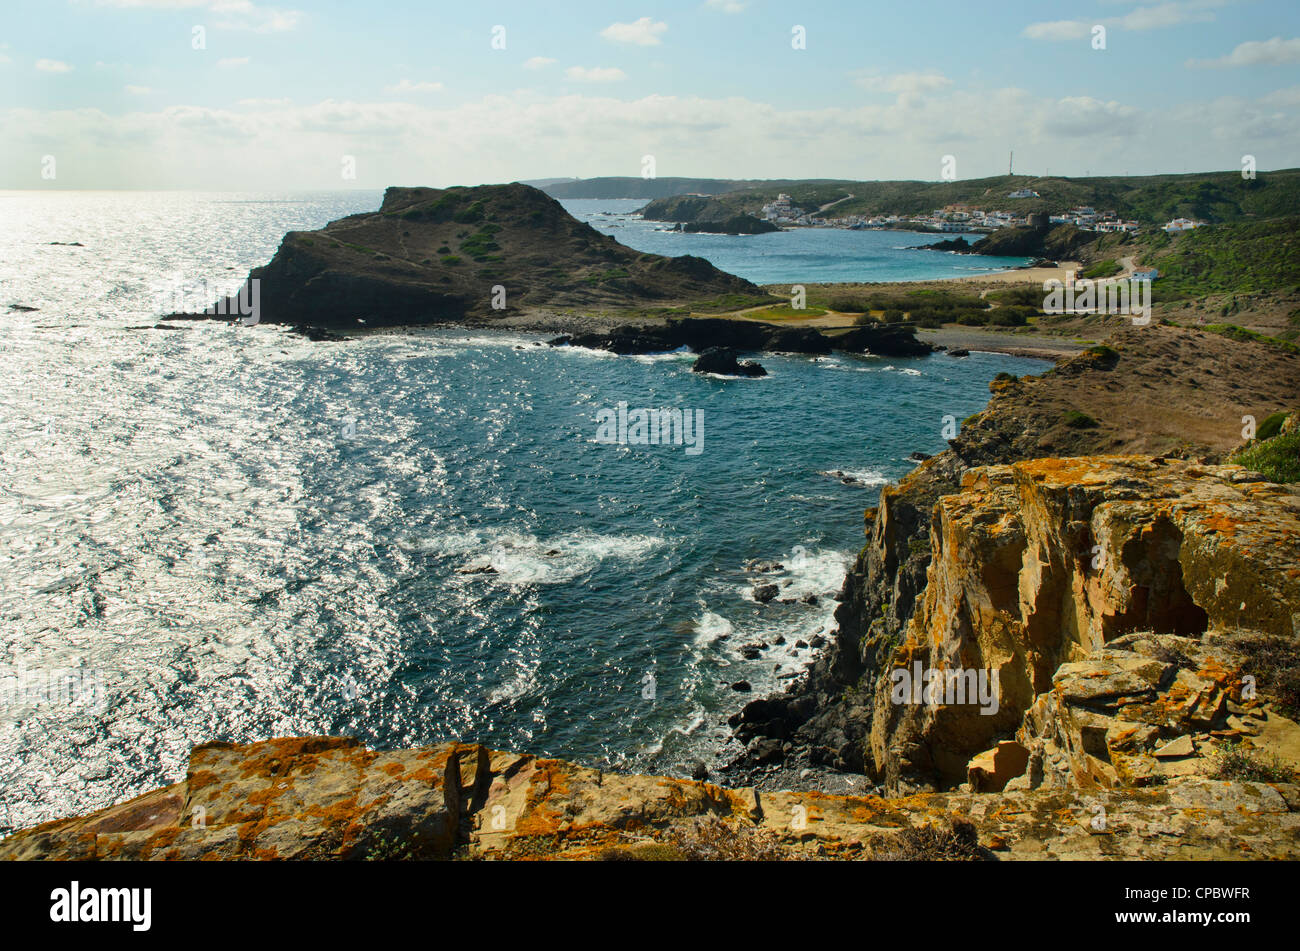 Looking south over Illots de Sa Mesquida to the village of Sa Mesquida on Menorca in the Balearic islands, Spain - Stock Image